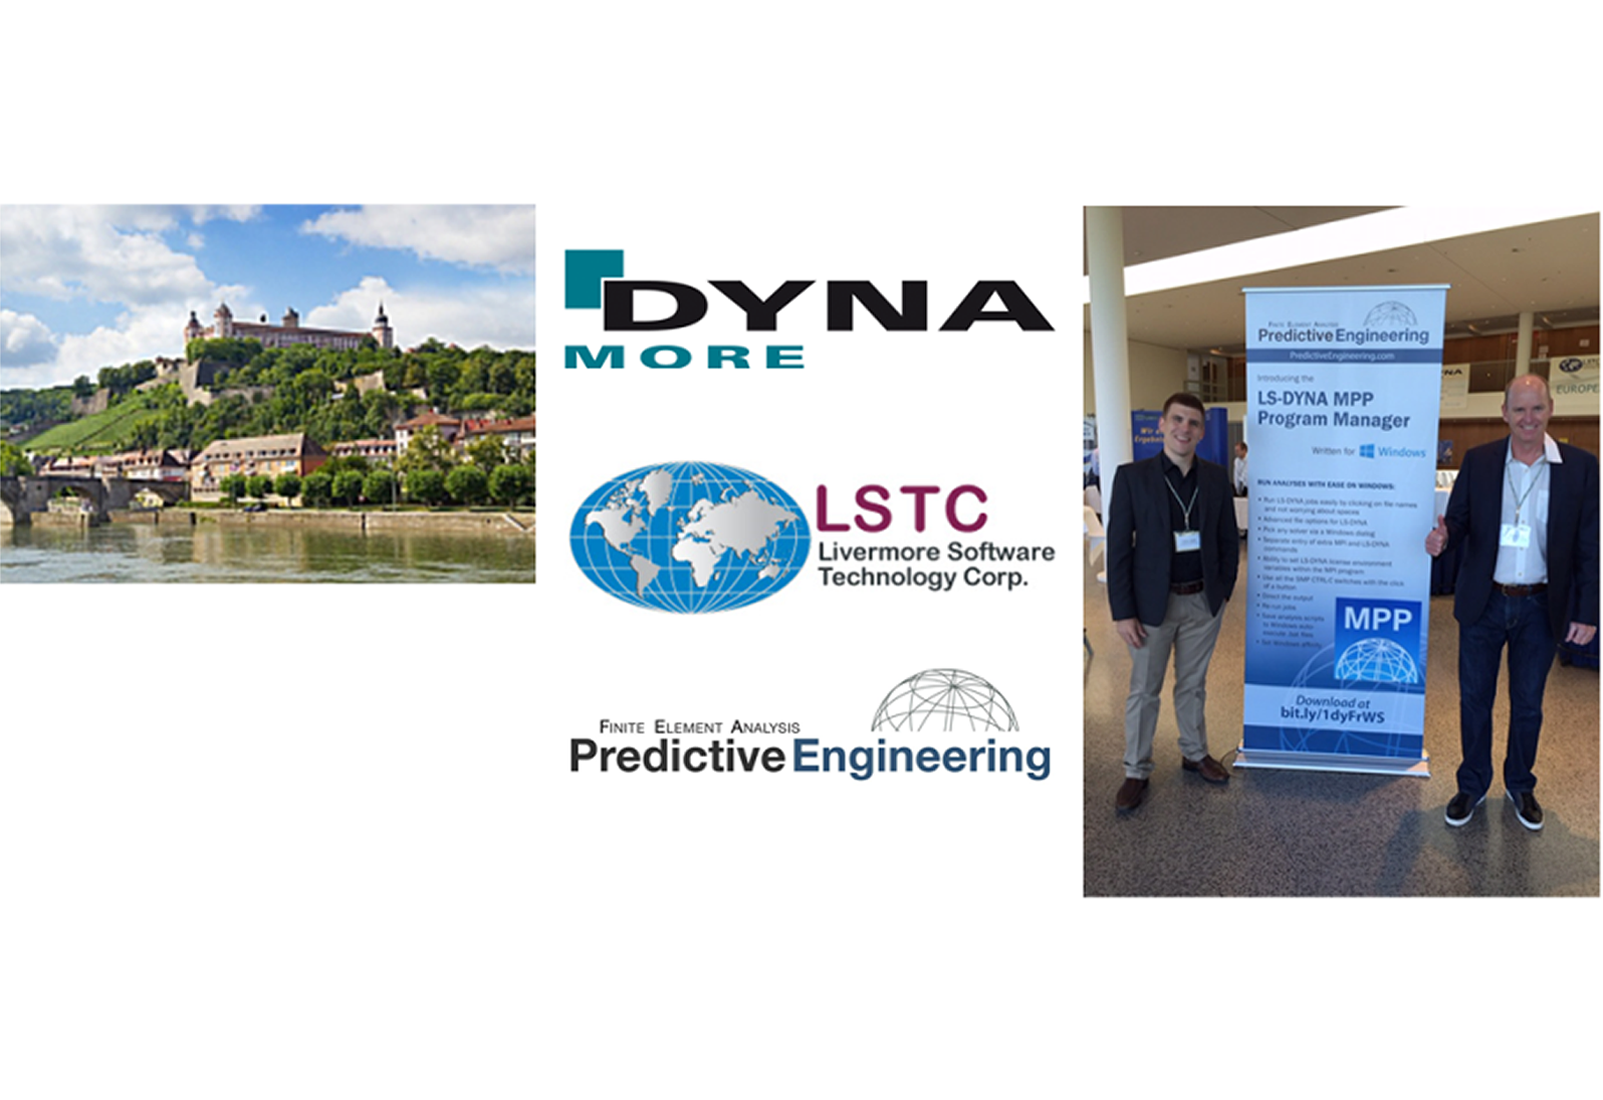 10th European LS-DYNA Conference / Predictive Engineering LS-DYNA Consulting Services